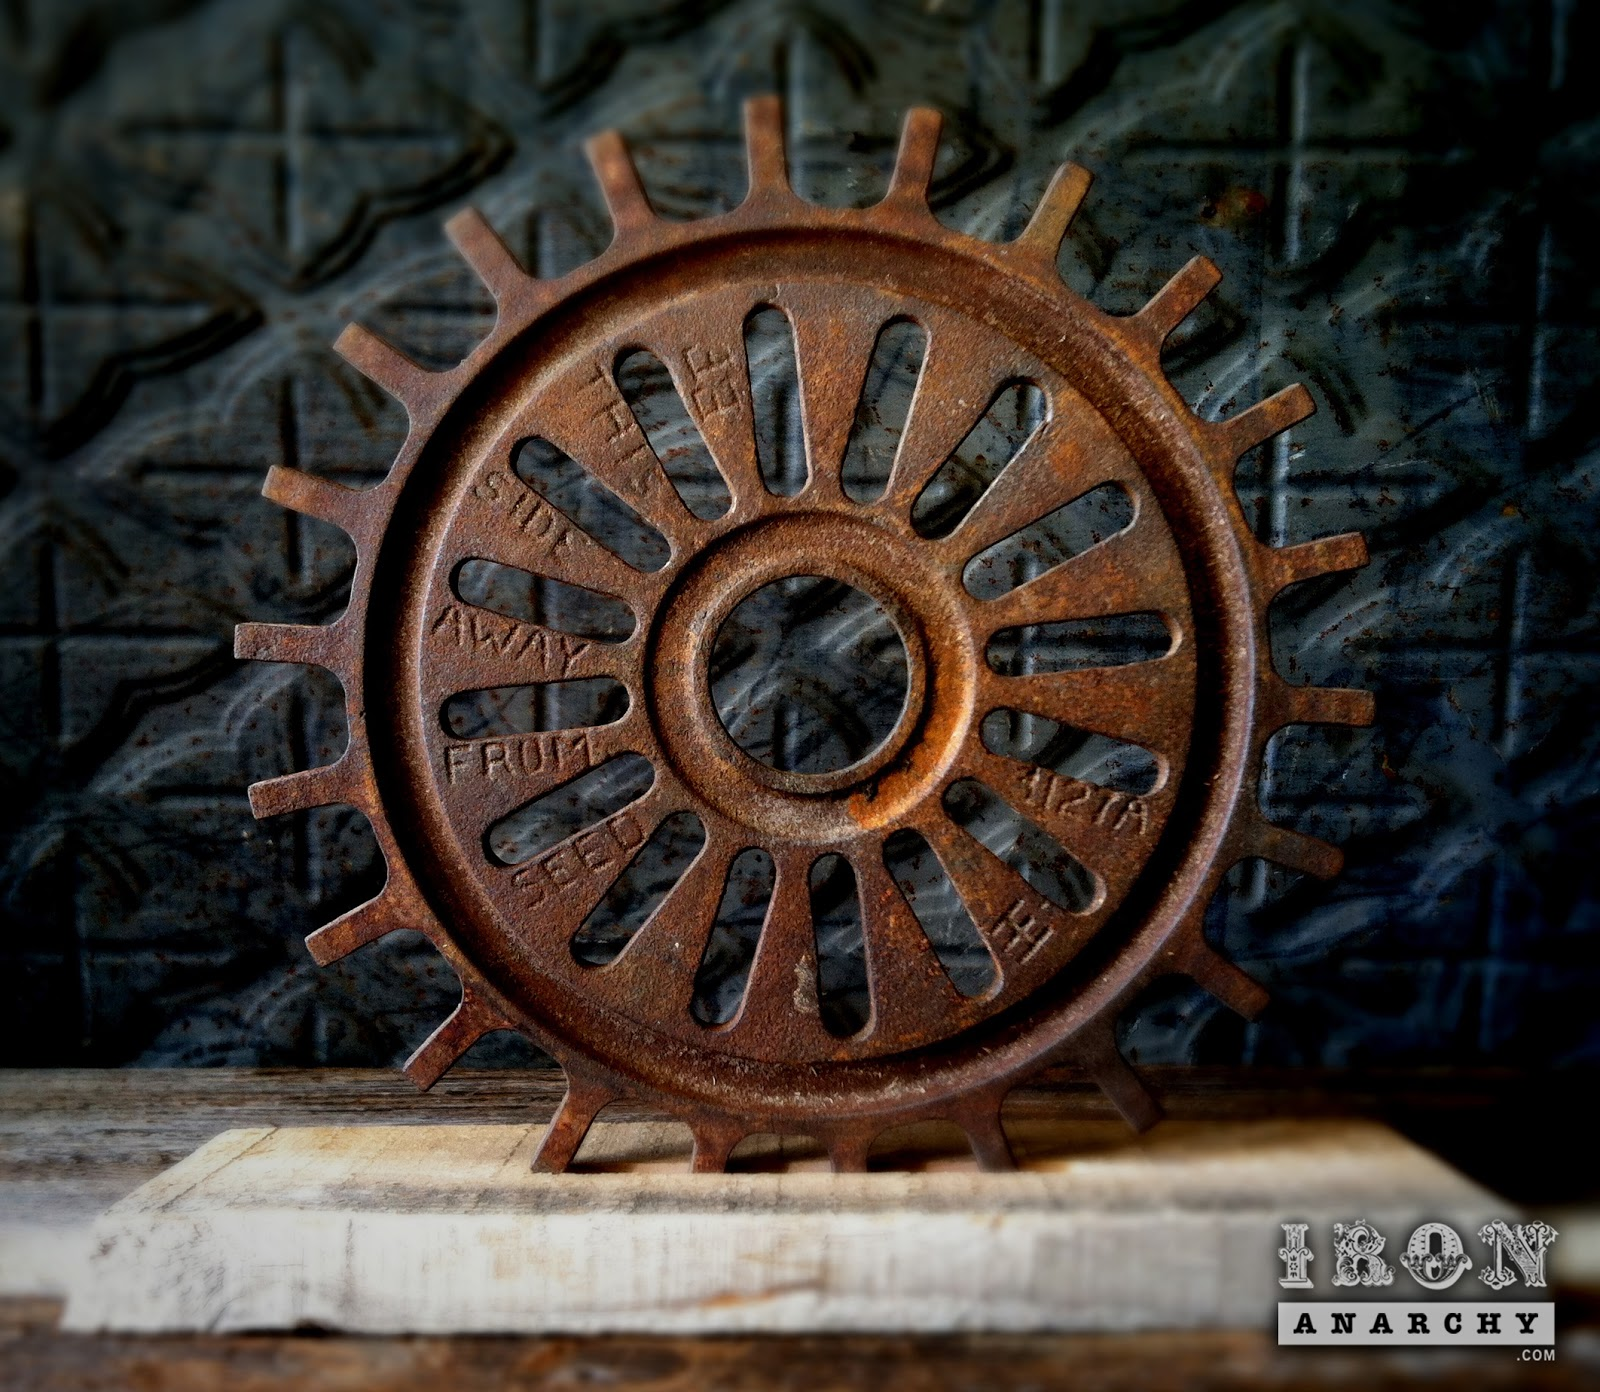 Cast Iron Wheels And Gears : Antique industrial cast iron gear sculpture